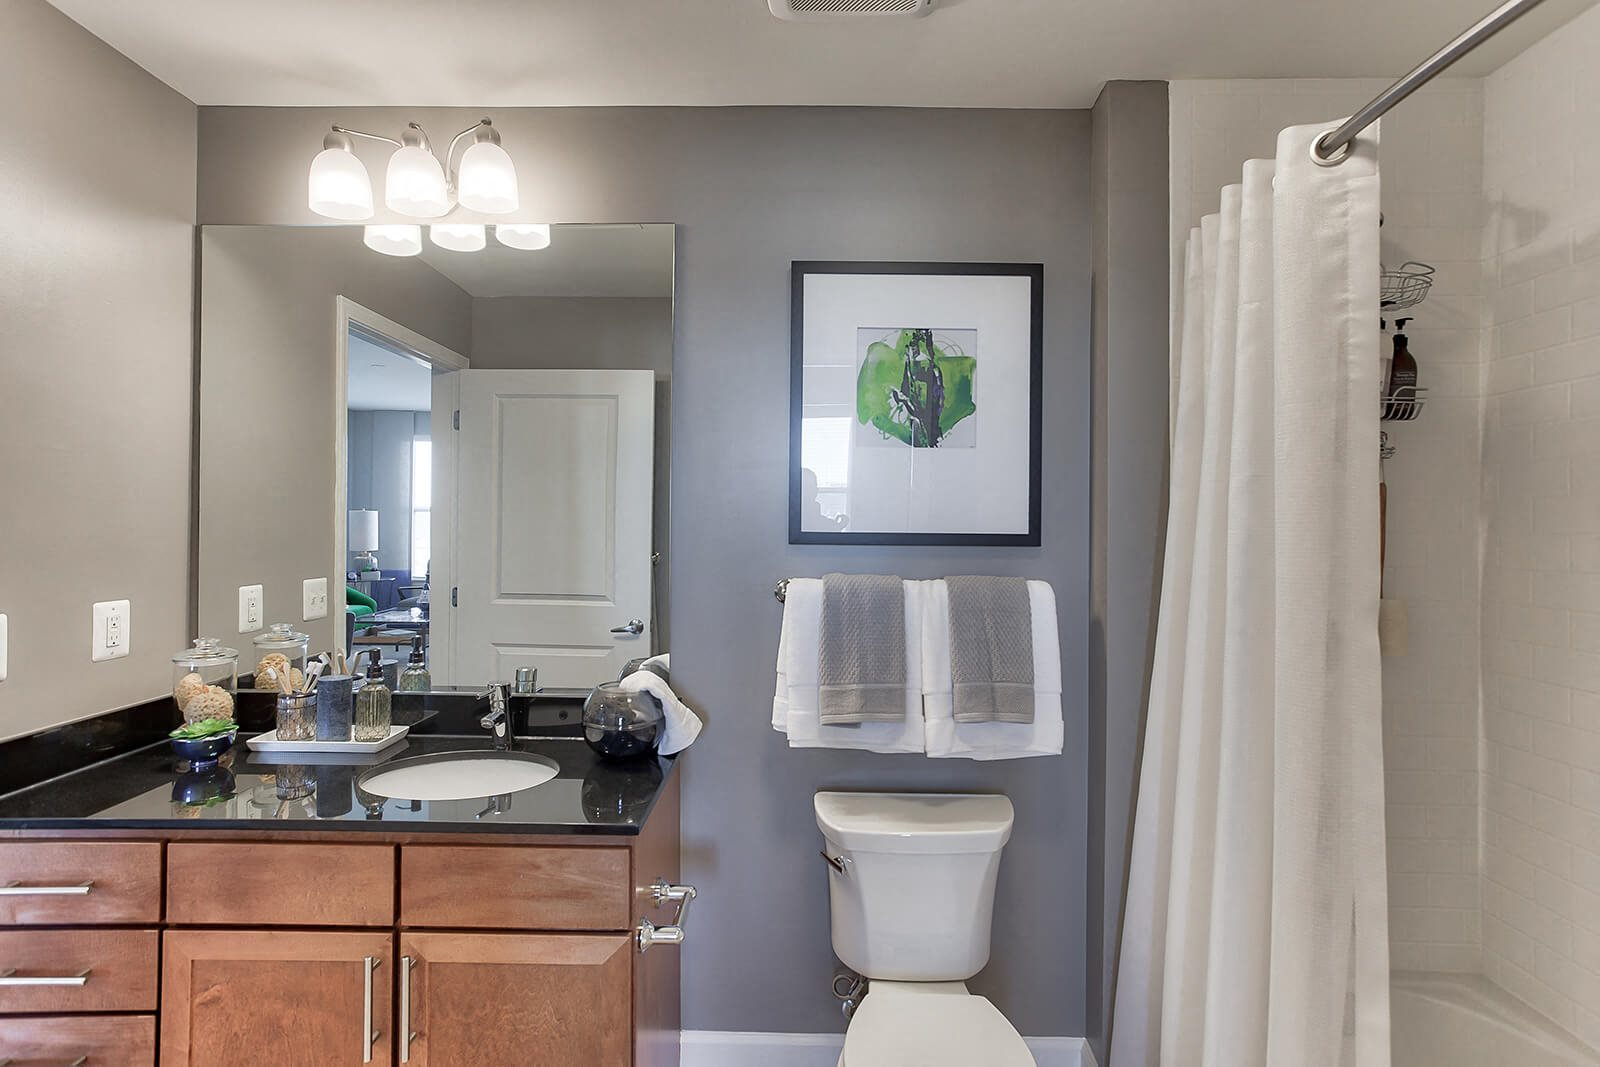 Spa-Inspired Bathrooms at The Ridgewood by Windsor, 4211 Ridge Top Road, Fairfax